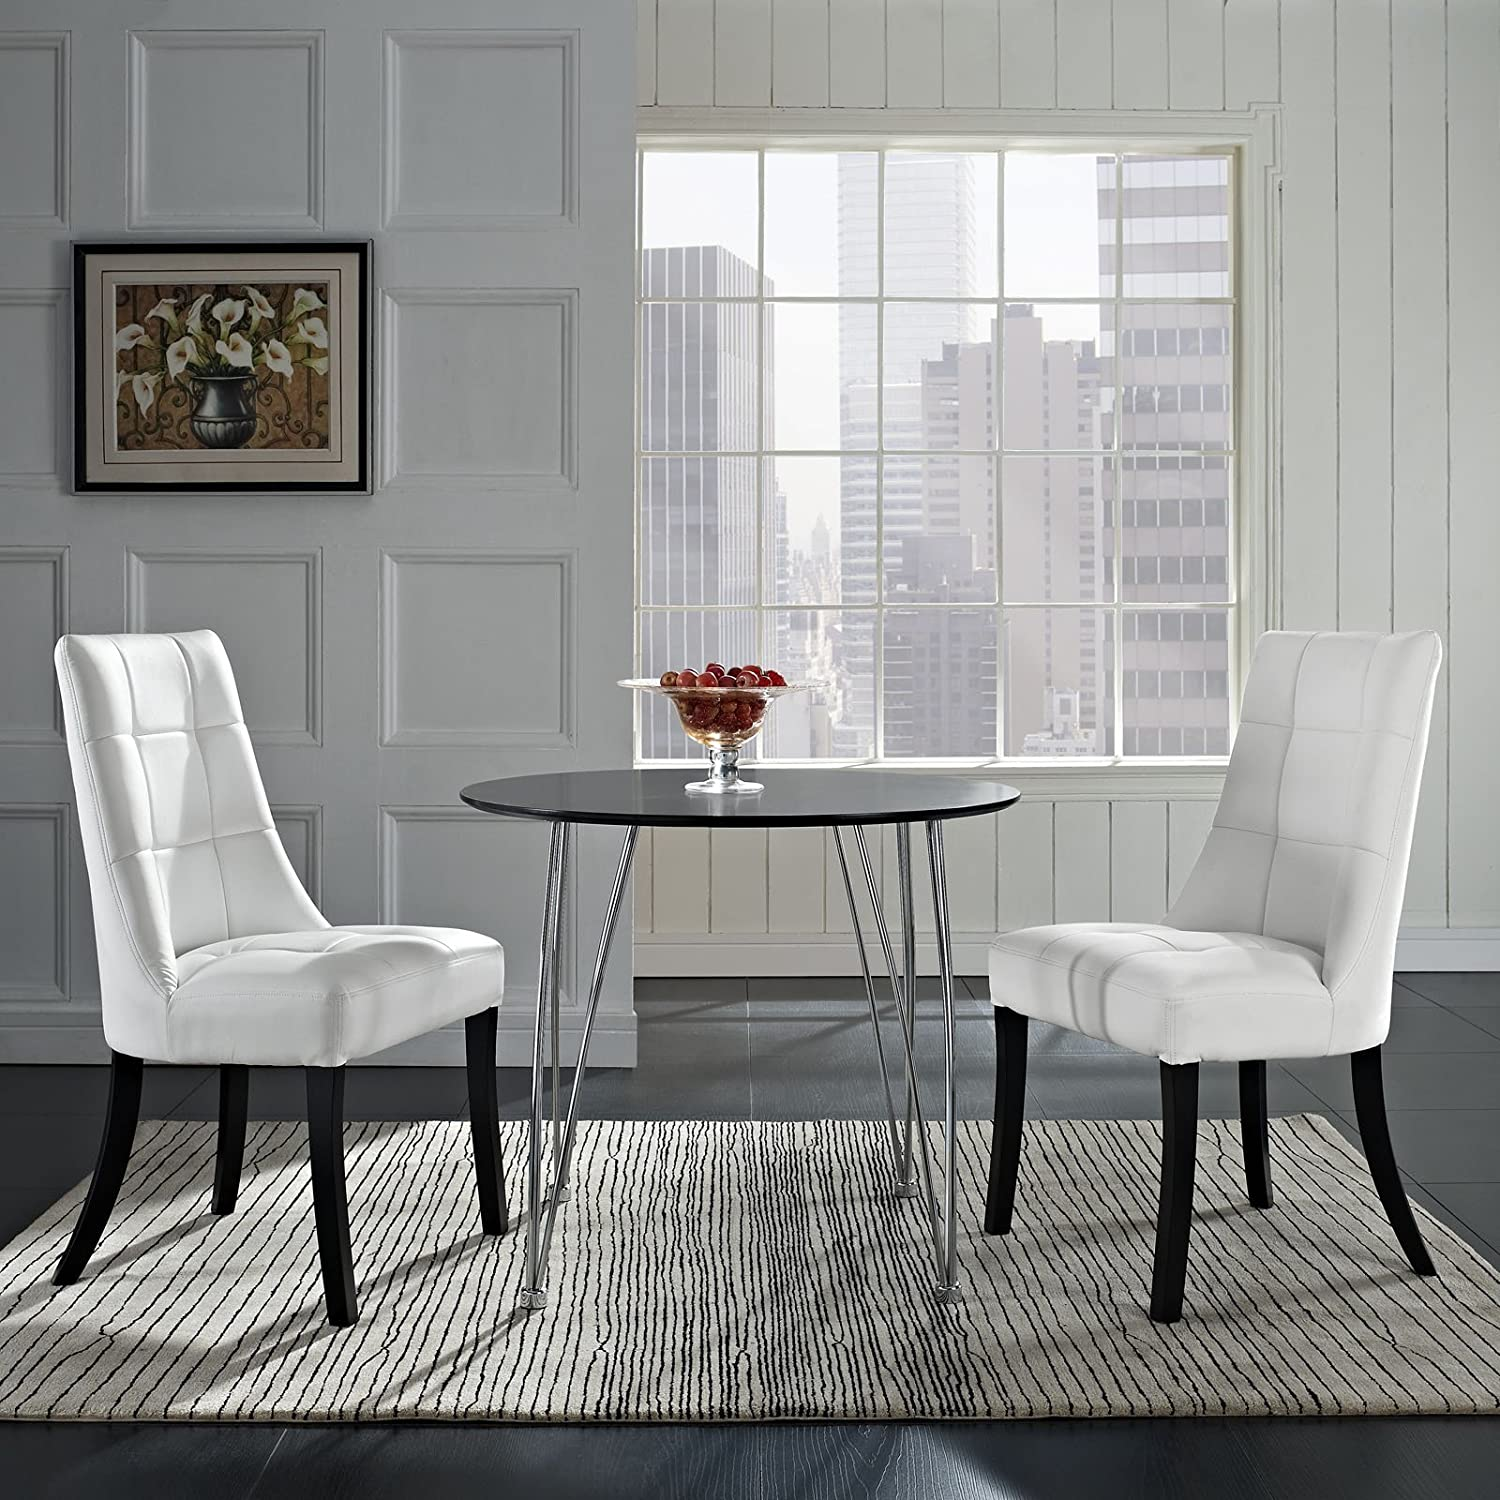 Modway Noblesse Modern Tufted Faux Leather Upholstered Two Kitchen and Dining Room Chairs in White